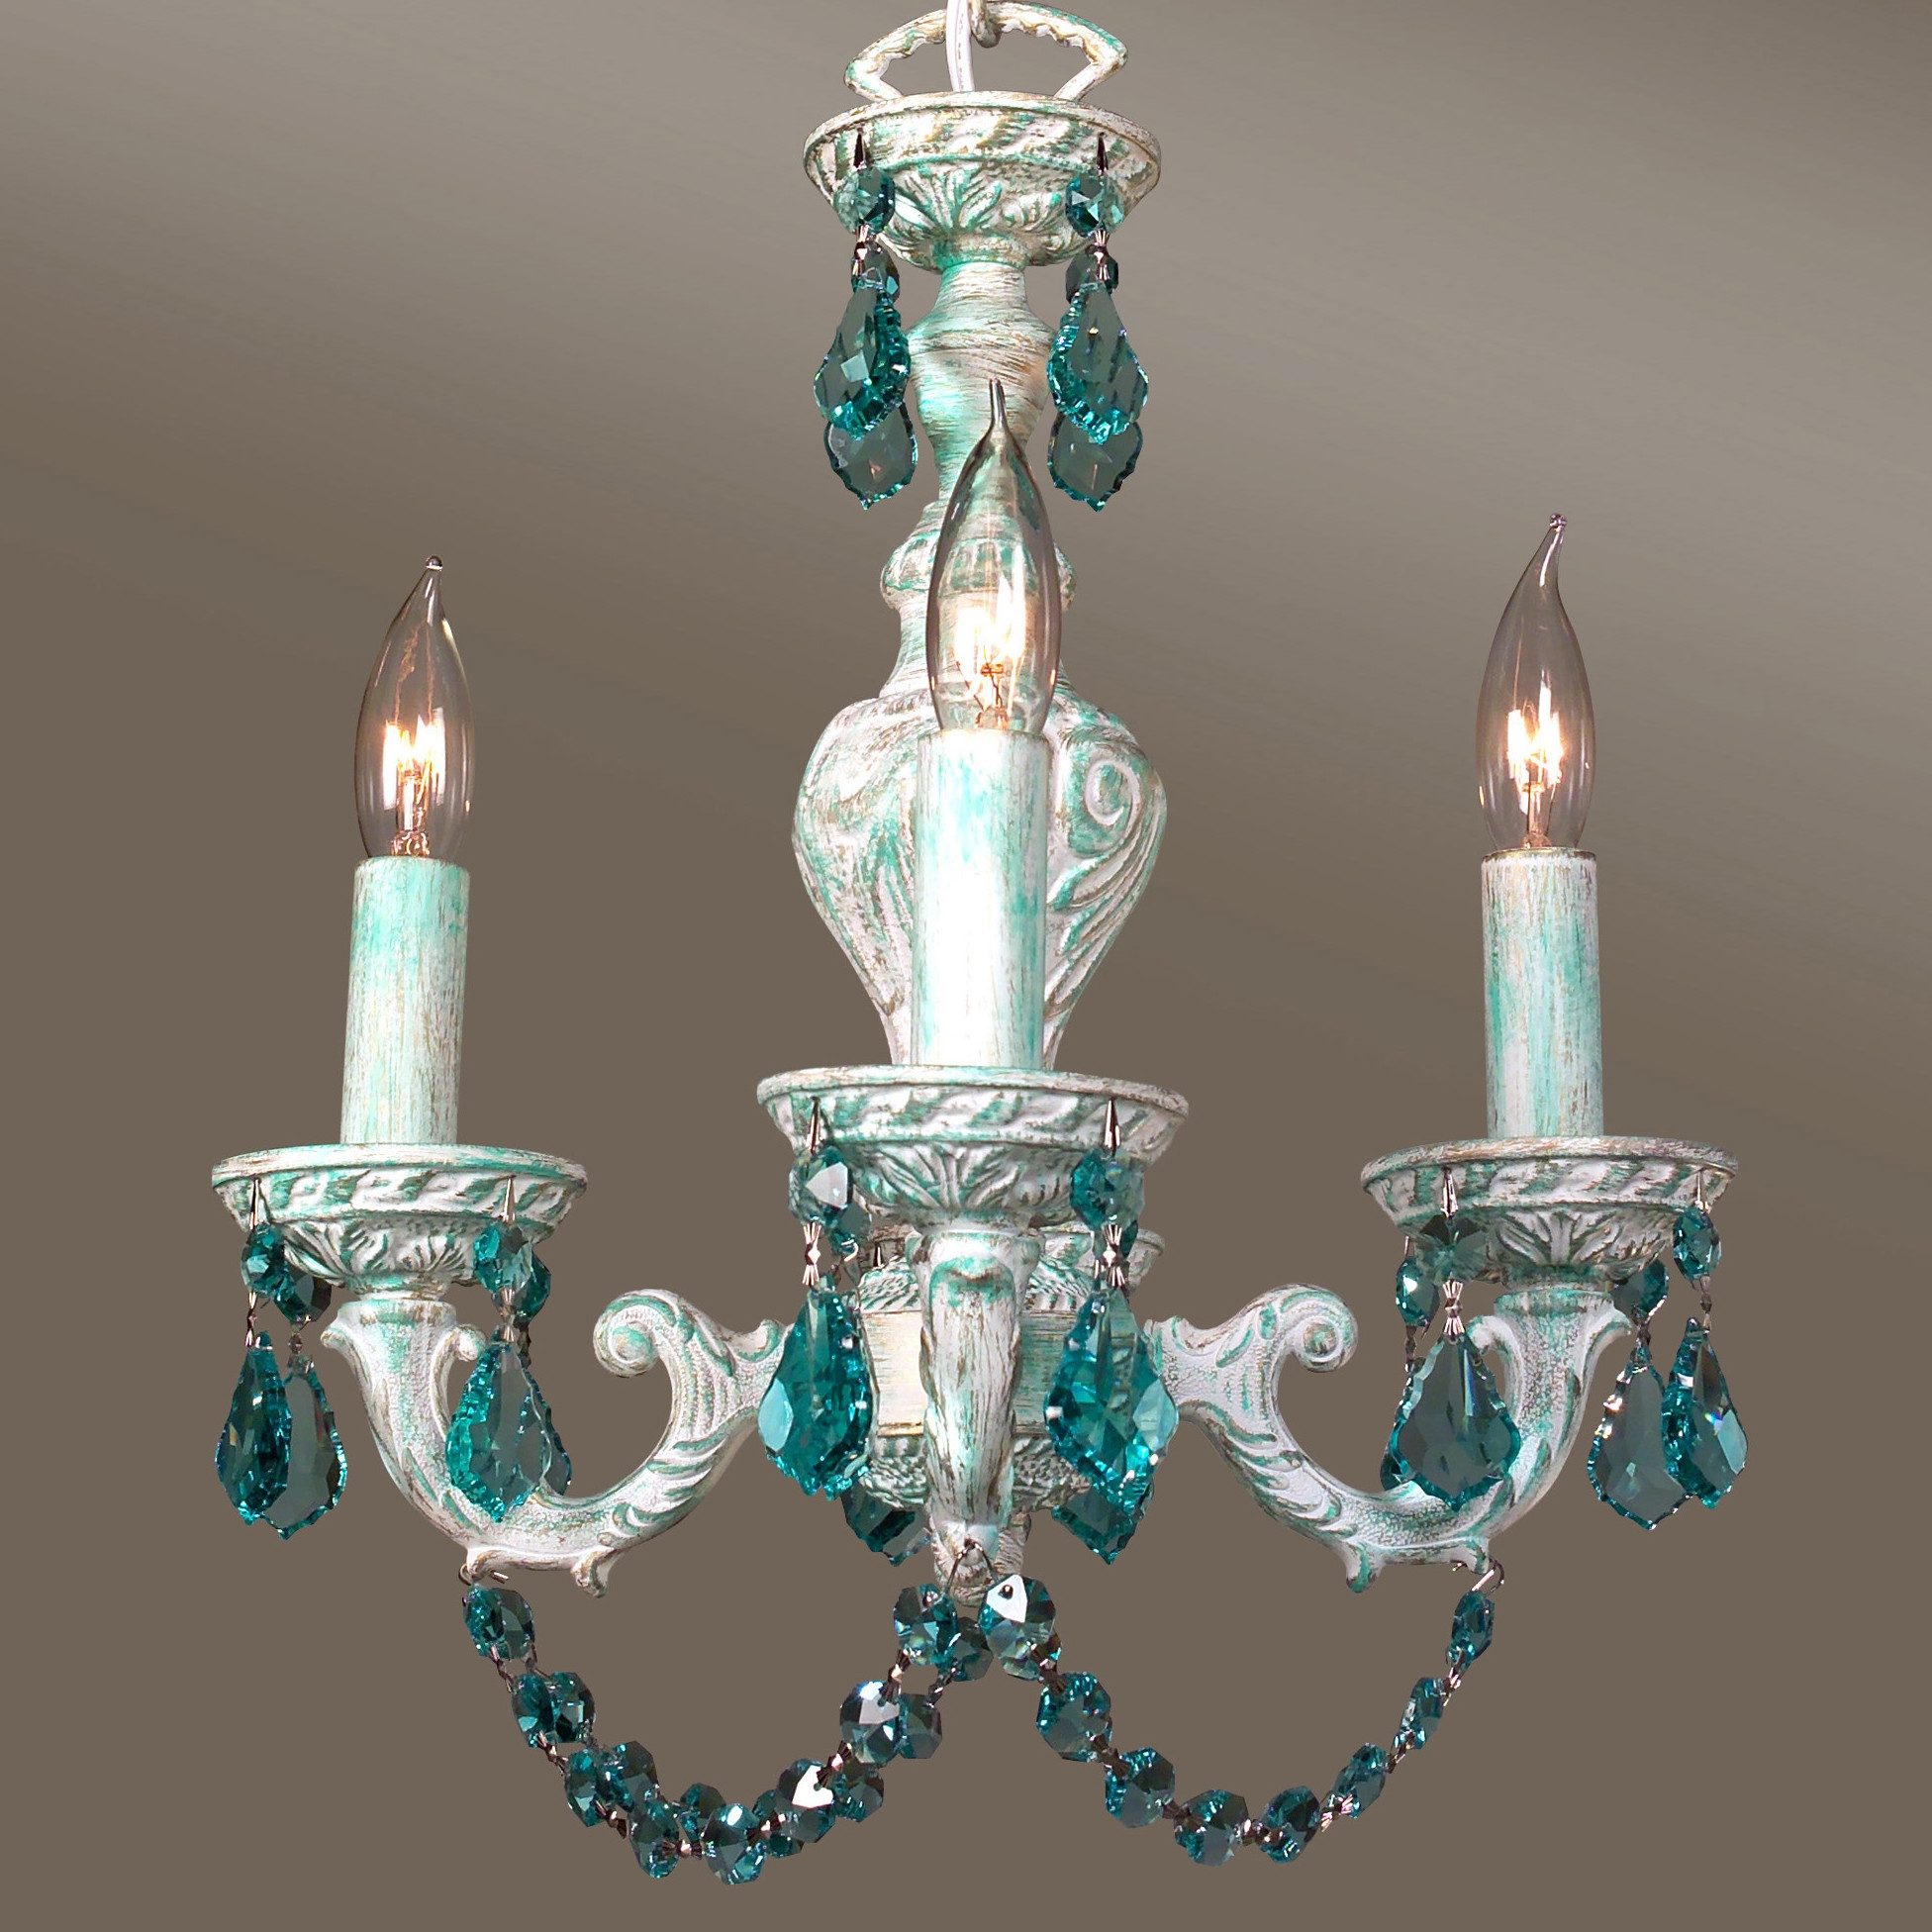 Chandelier Stunning Colored Chandelier Gypsy Chandeliers Pertaining To Multi Colored Gypsy Chandeliers (Image 13 of 25)